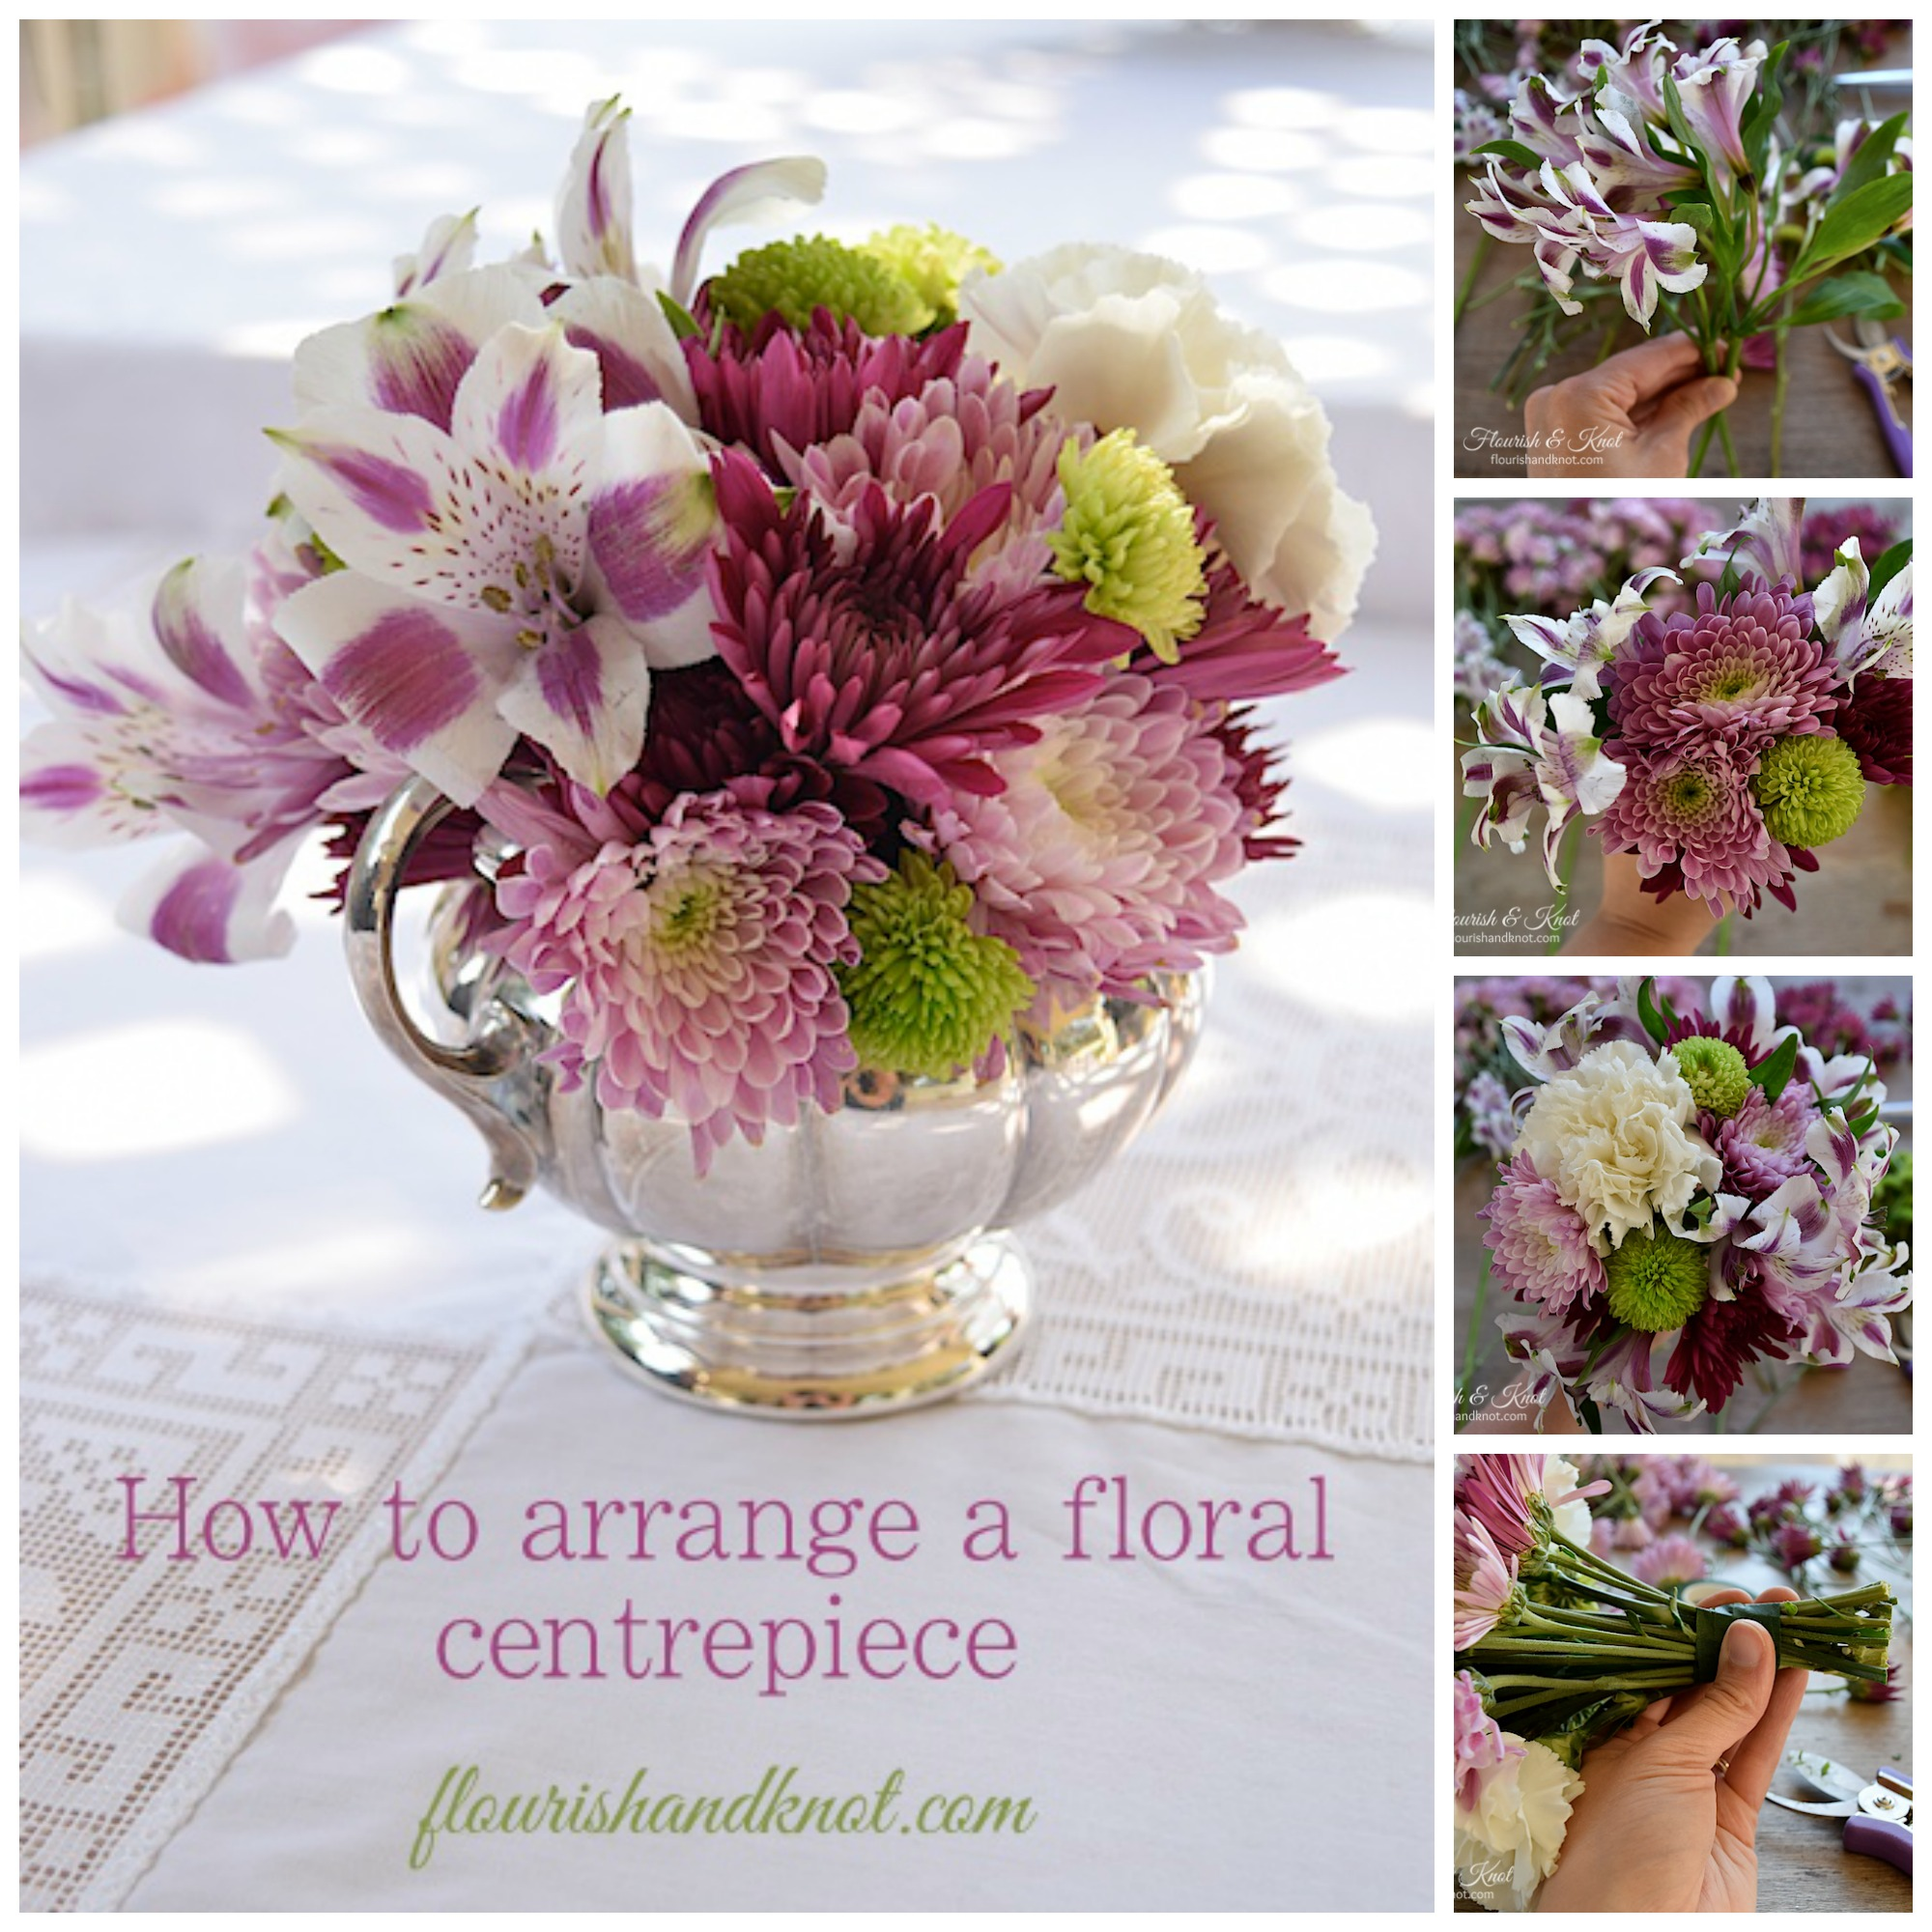 How to arrange a centrepiece - no experience required! | flourishandknot.com